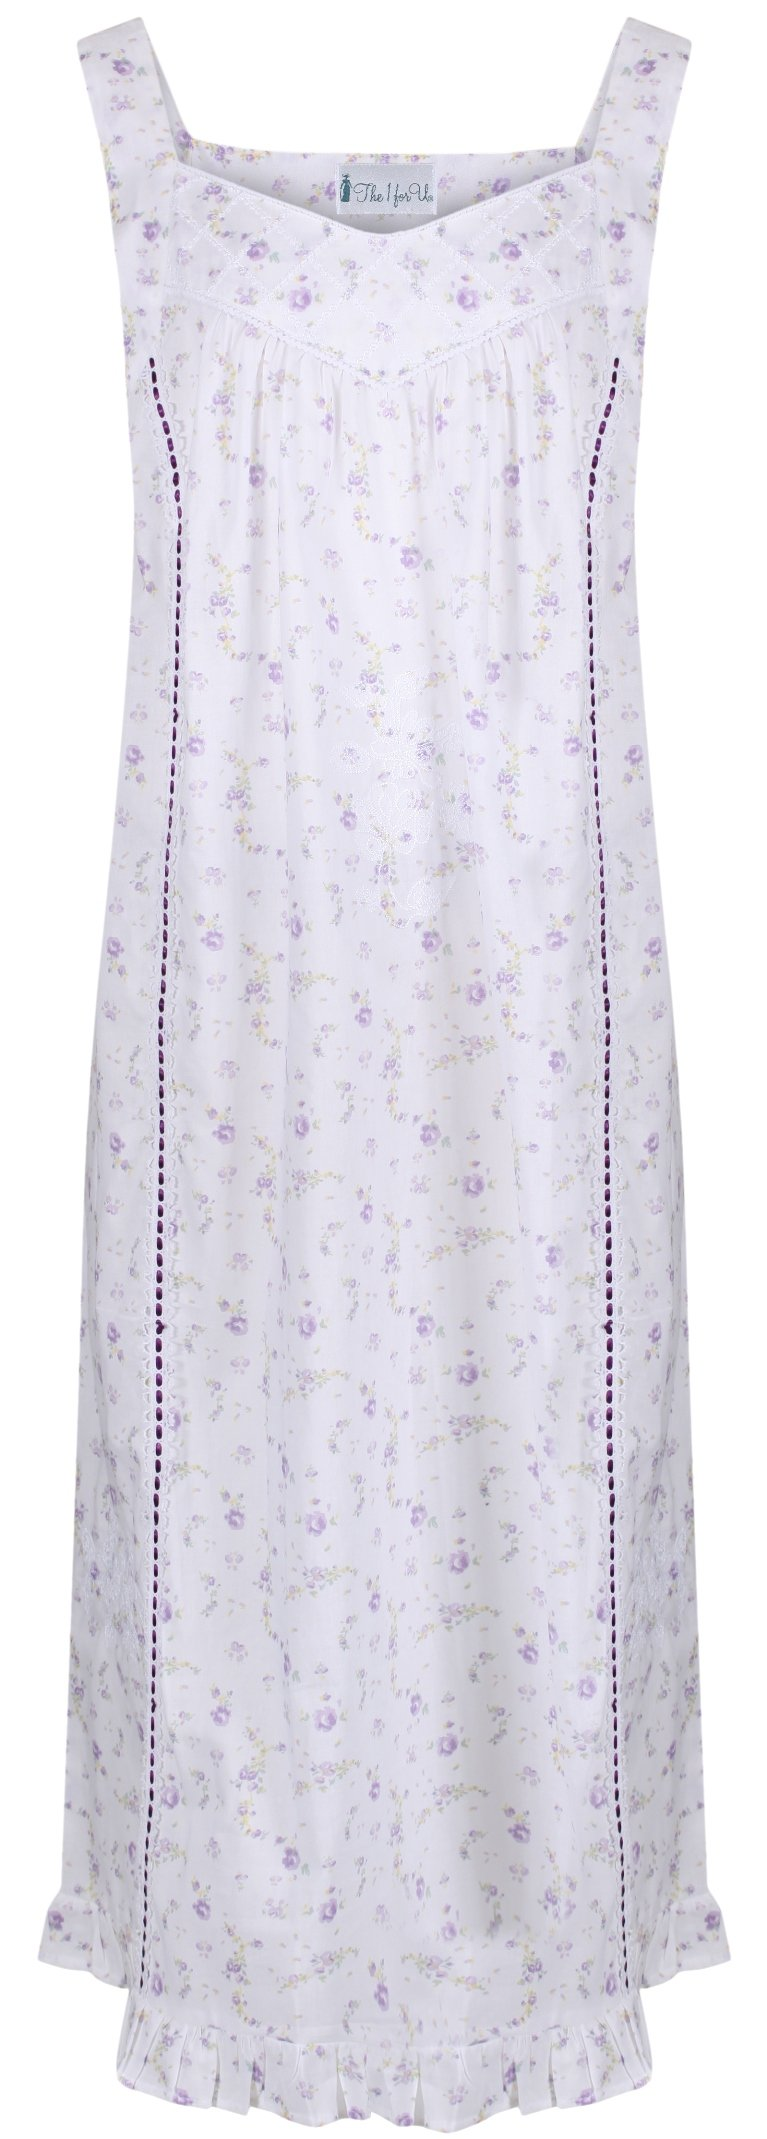 The 1 for U Nancy 100% Cotton Victorian Sleeveless Nightgown 7 Sizes (Large, Lilac Rose)